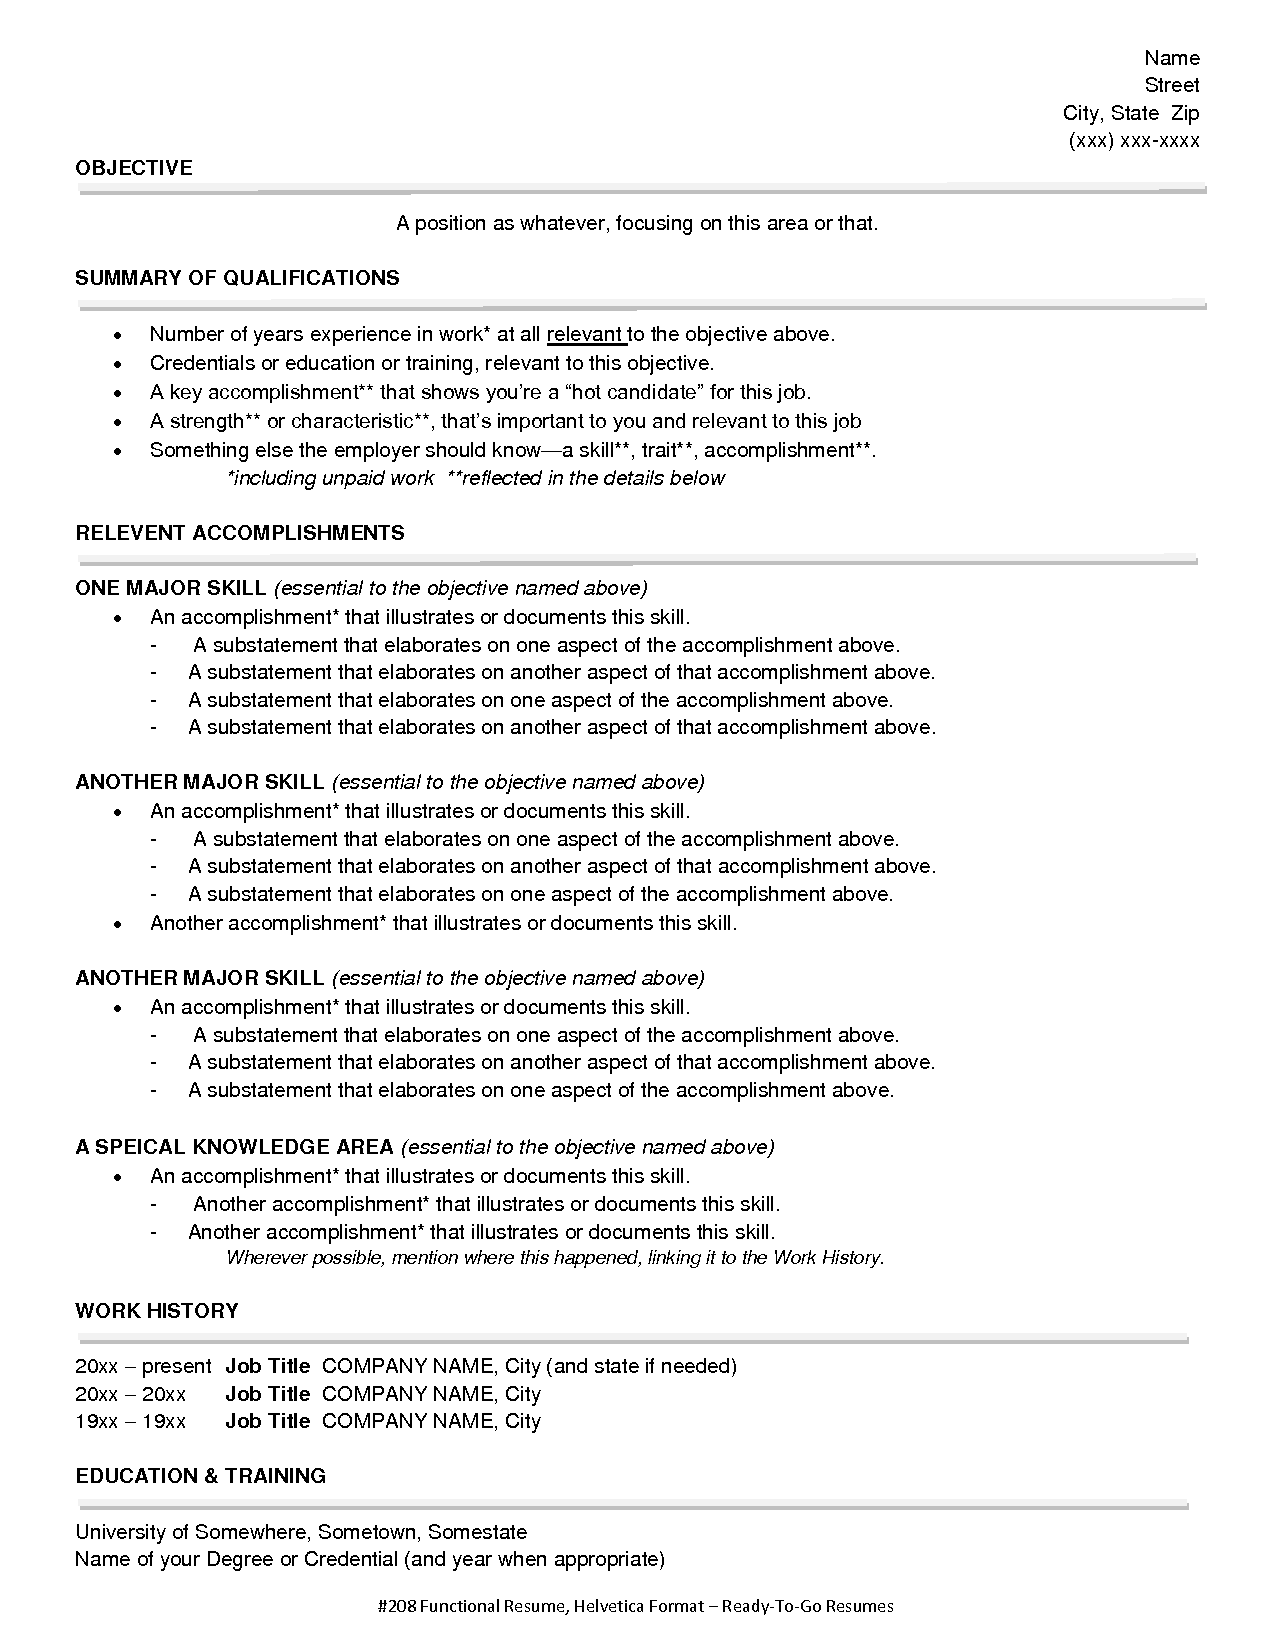 Functional Style Resume Sample  Functional Resume Style Doc